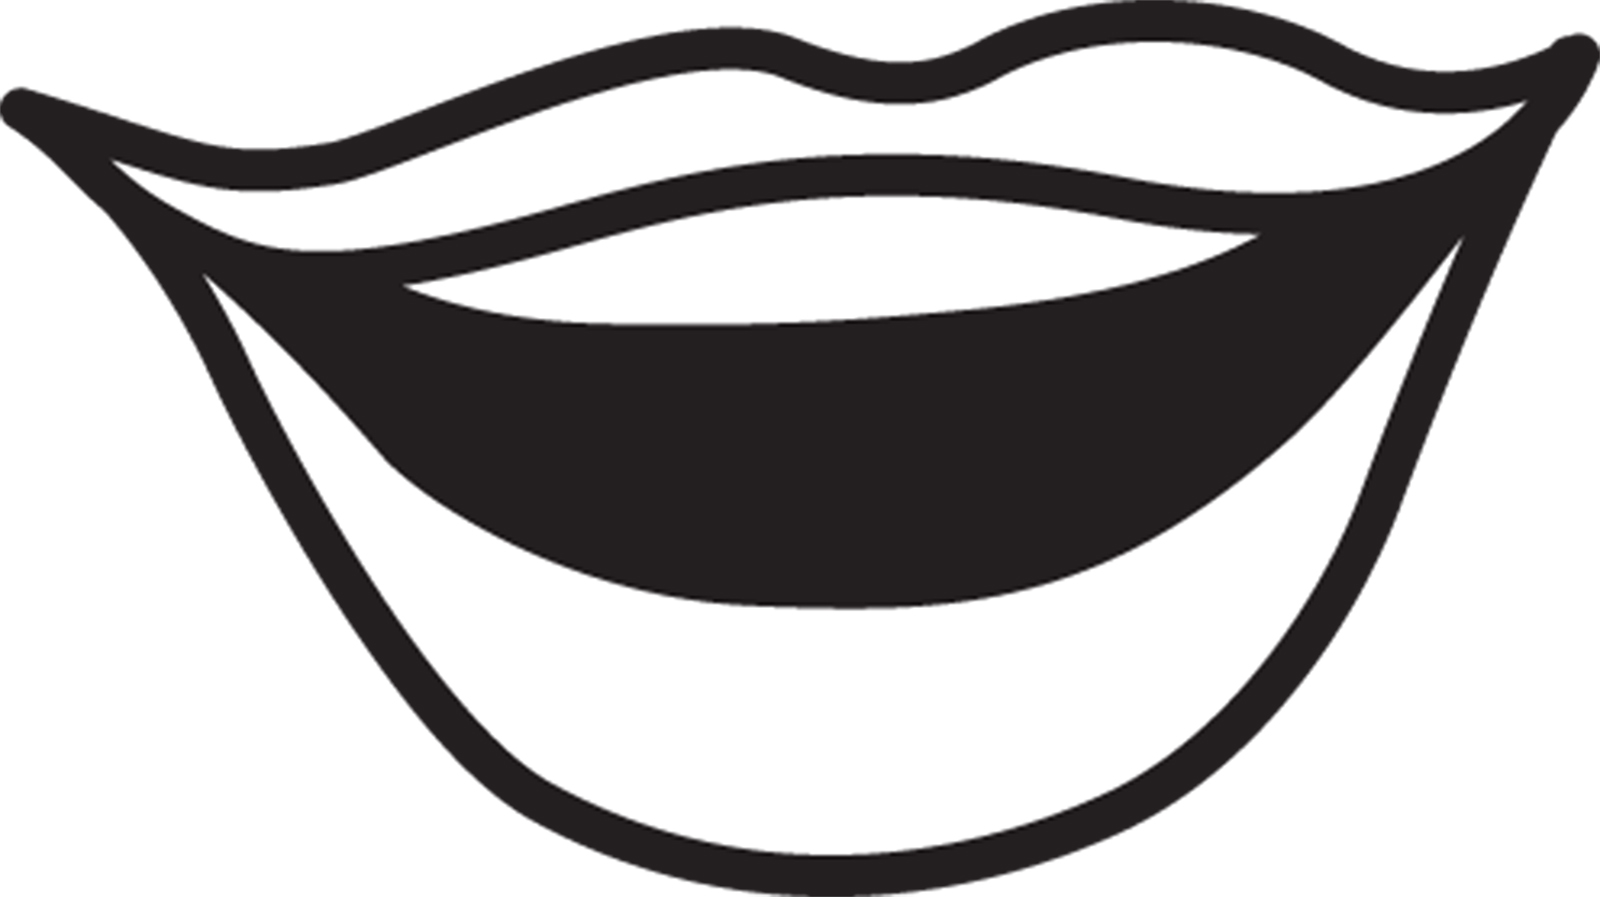 Mouth Clipart Black And White.